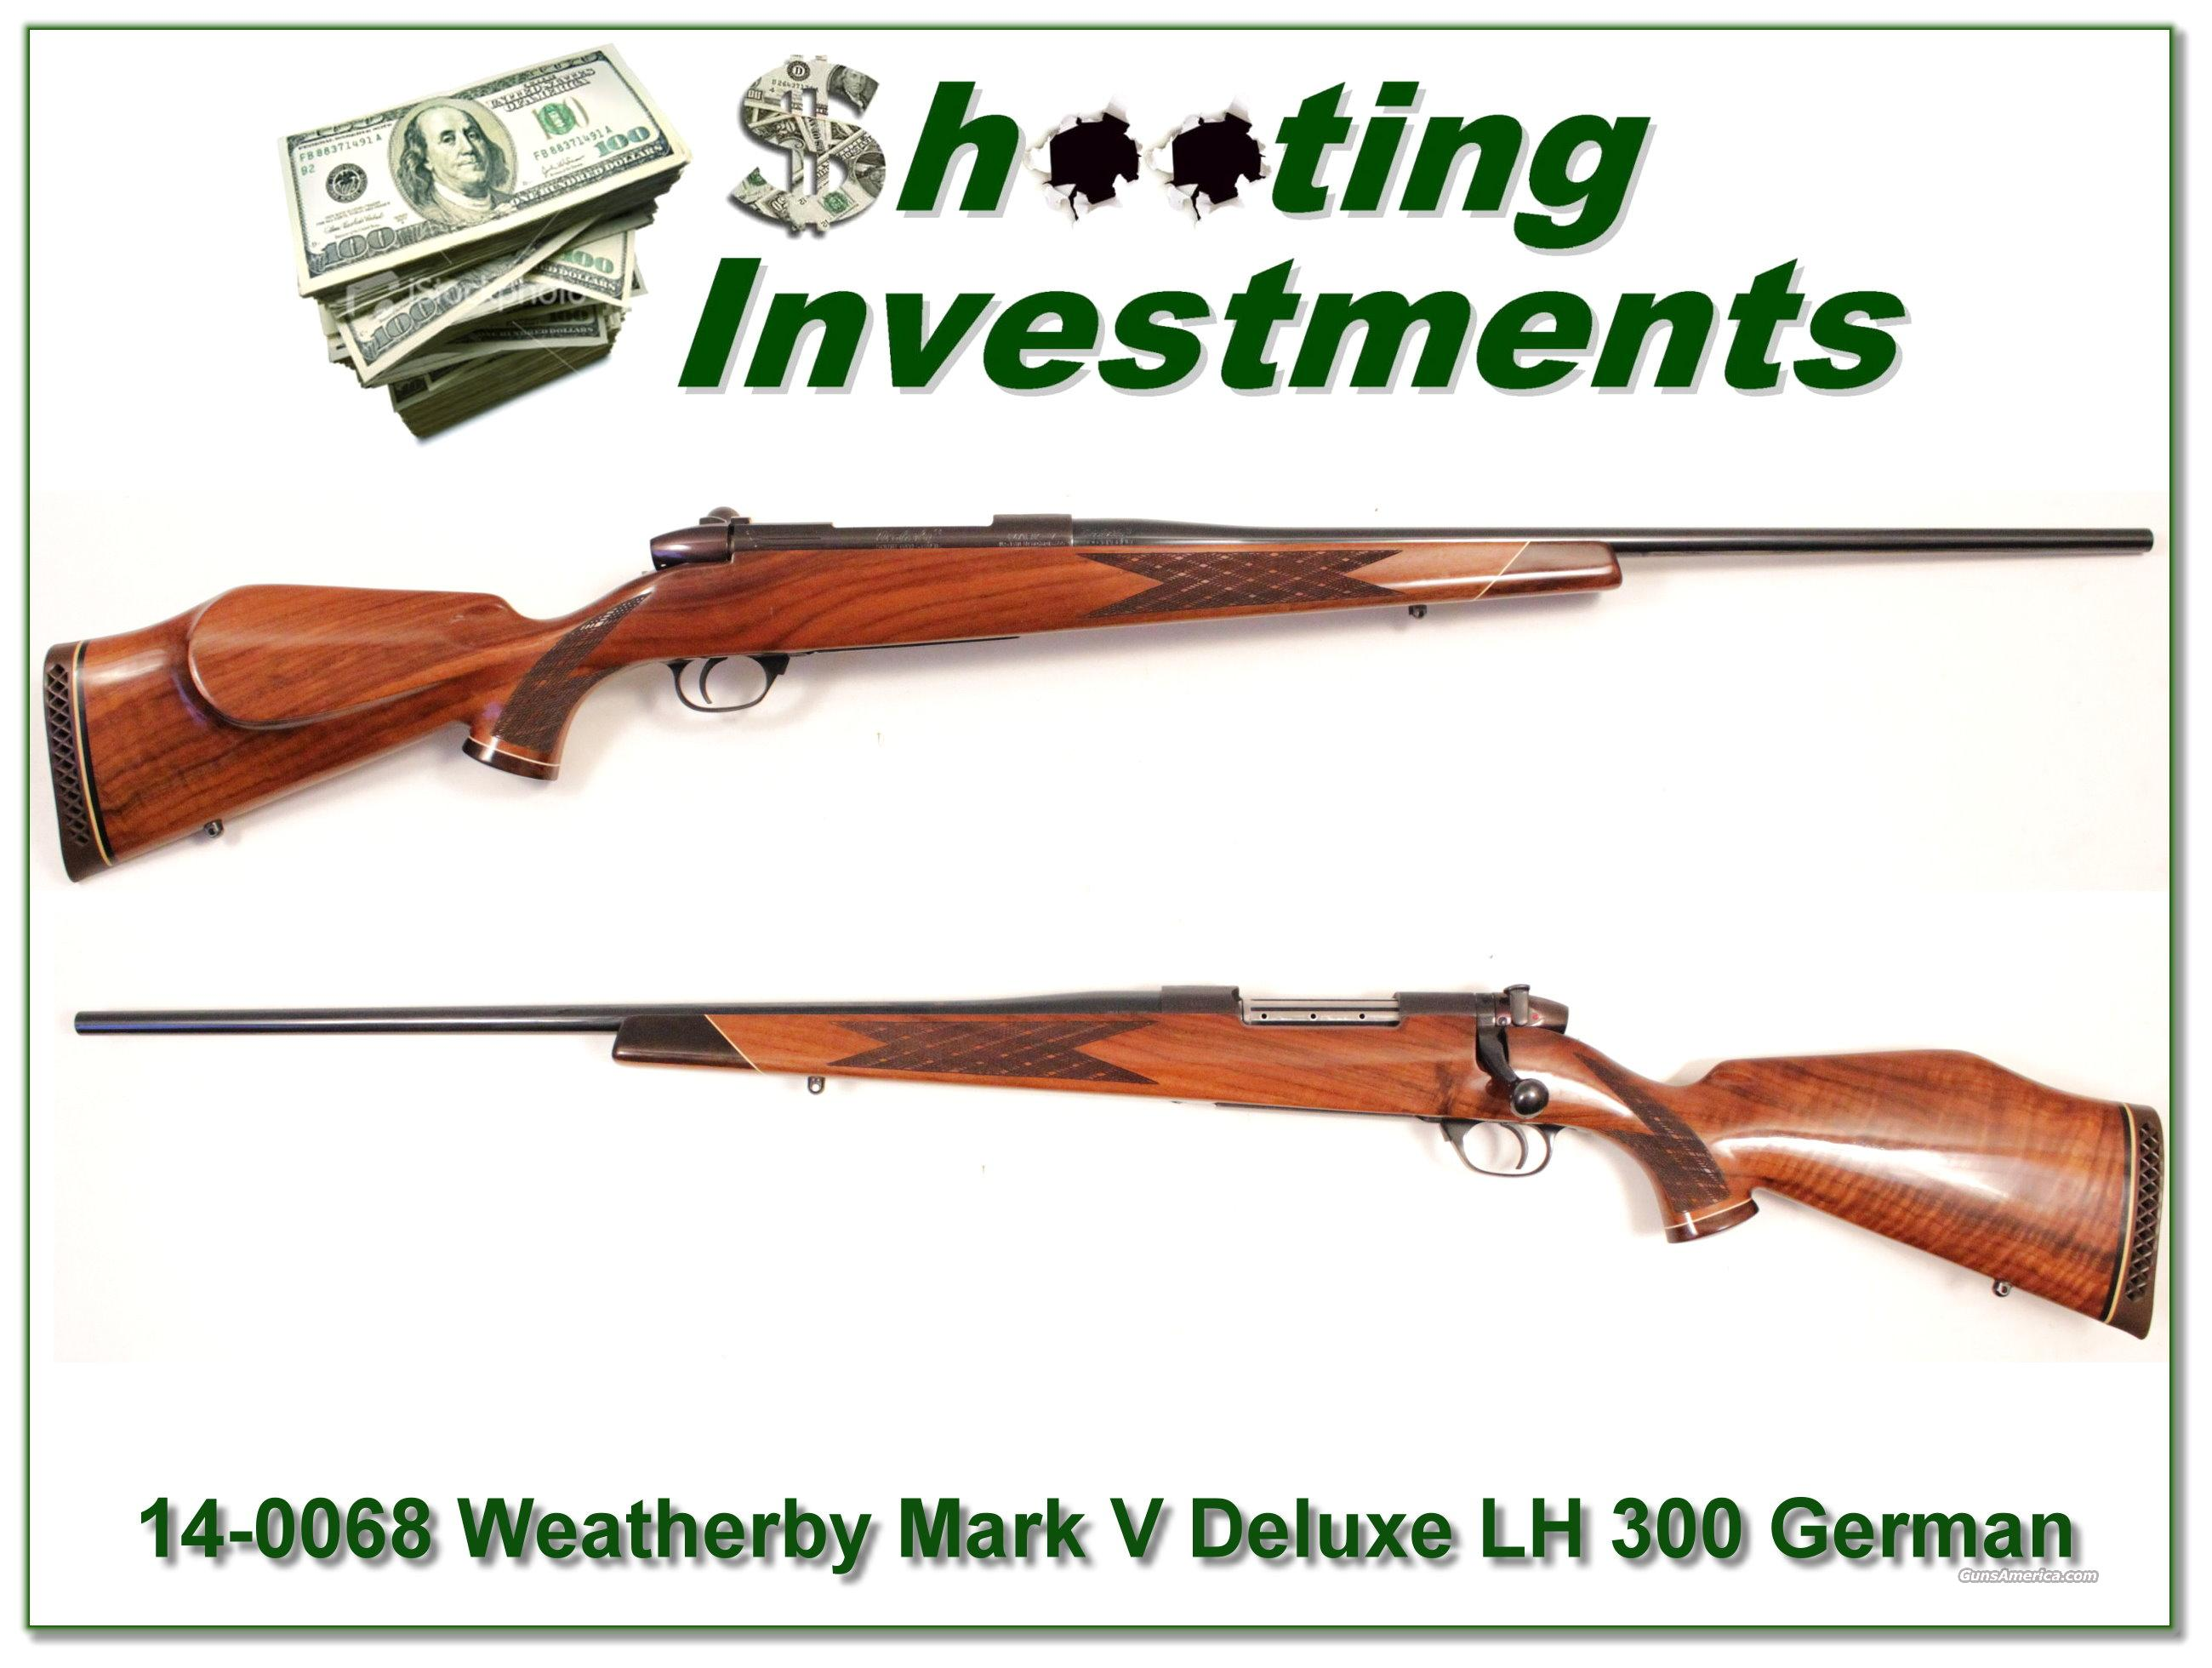 Weatherby Mark V Deluxe German LH Exc Wood!  Guns > Rifles > Weatherby Rifles > Sporting